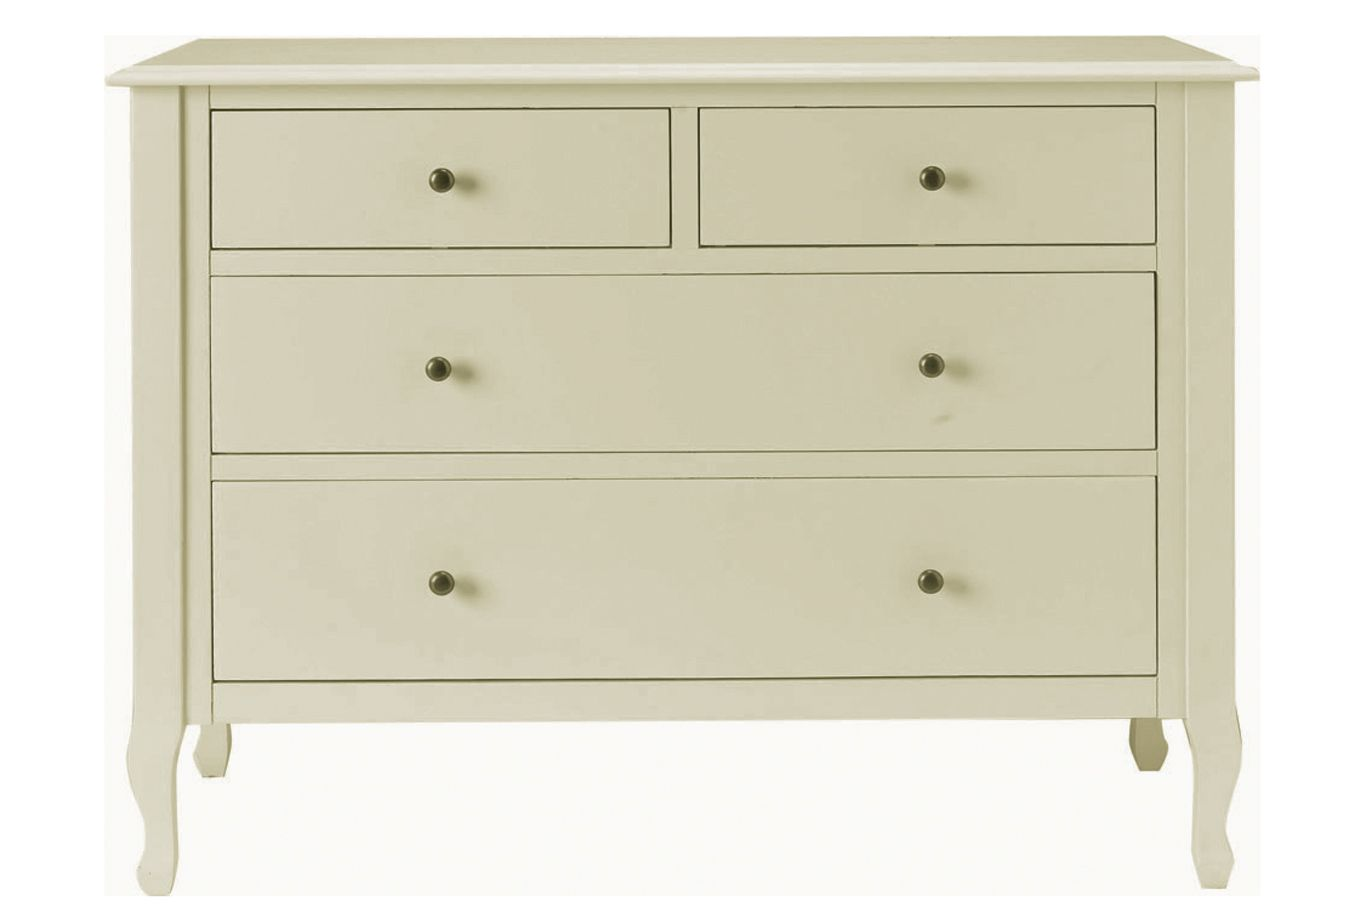 Laura Ashley Made To Order Chest Of Drawers Review Your Chest Of Drawer Dressers For Sale Wide Chest Of Drawers Modern Chest Of Drawers